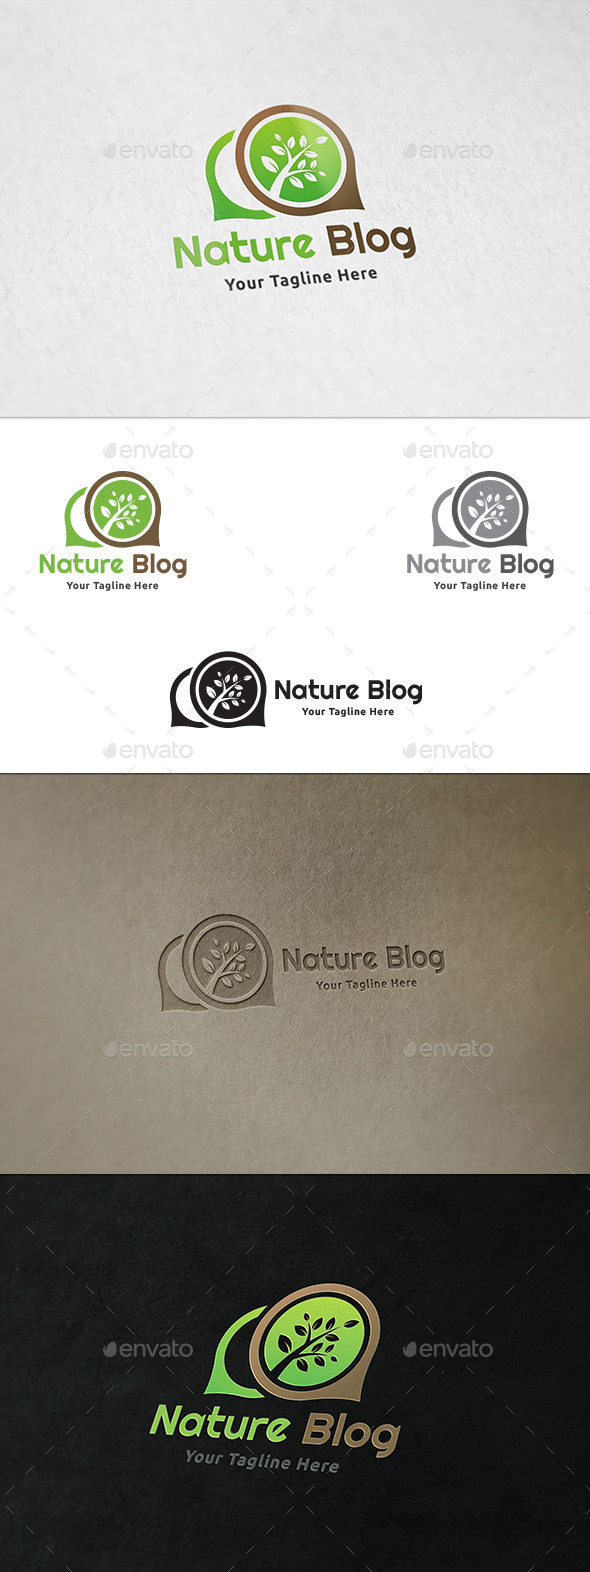 GraphicRiver Nature Blog Logo Template 10985344